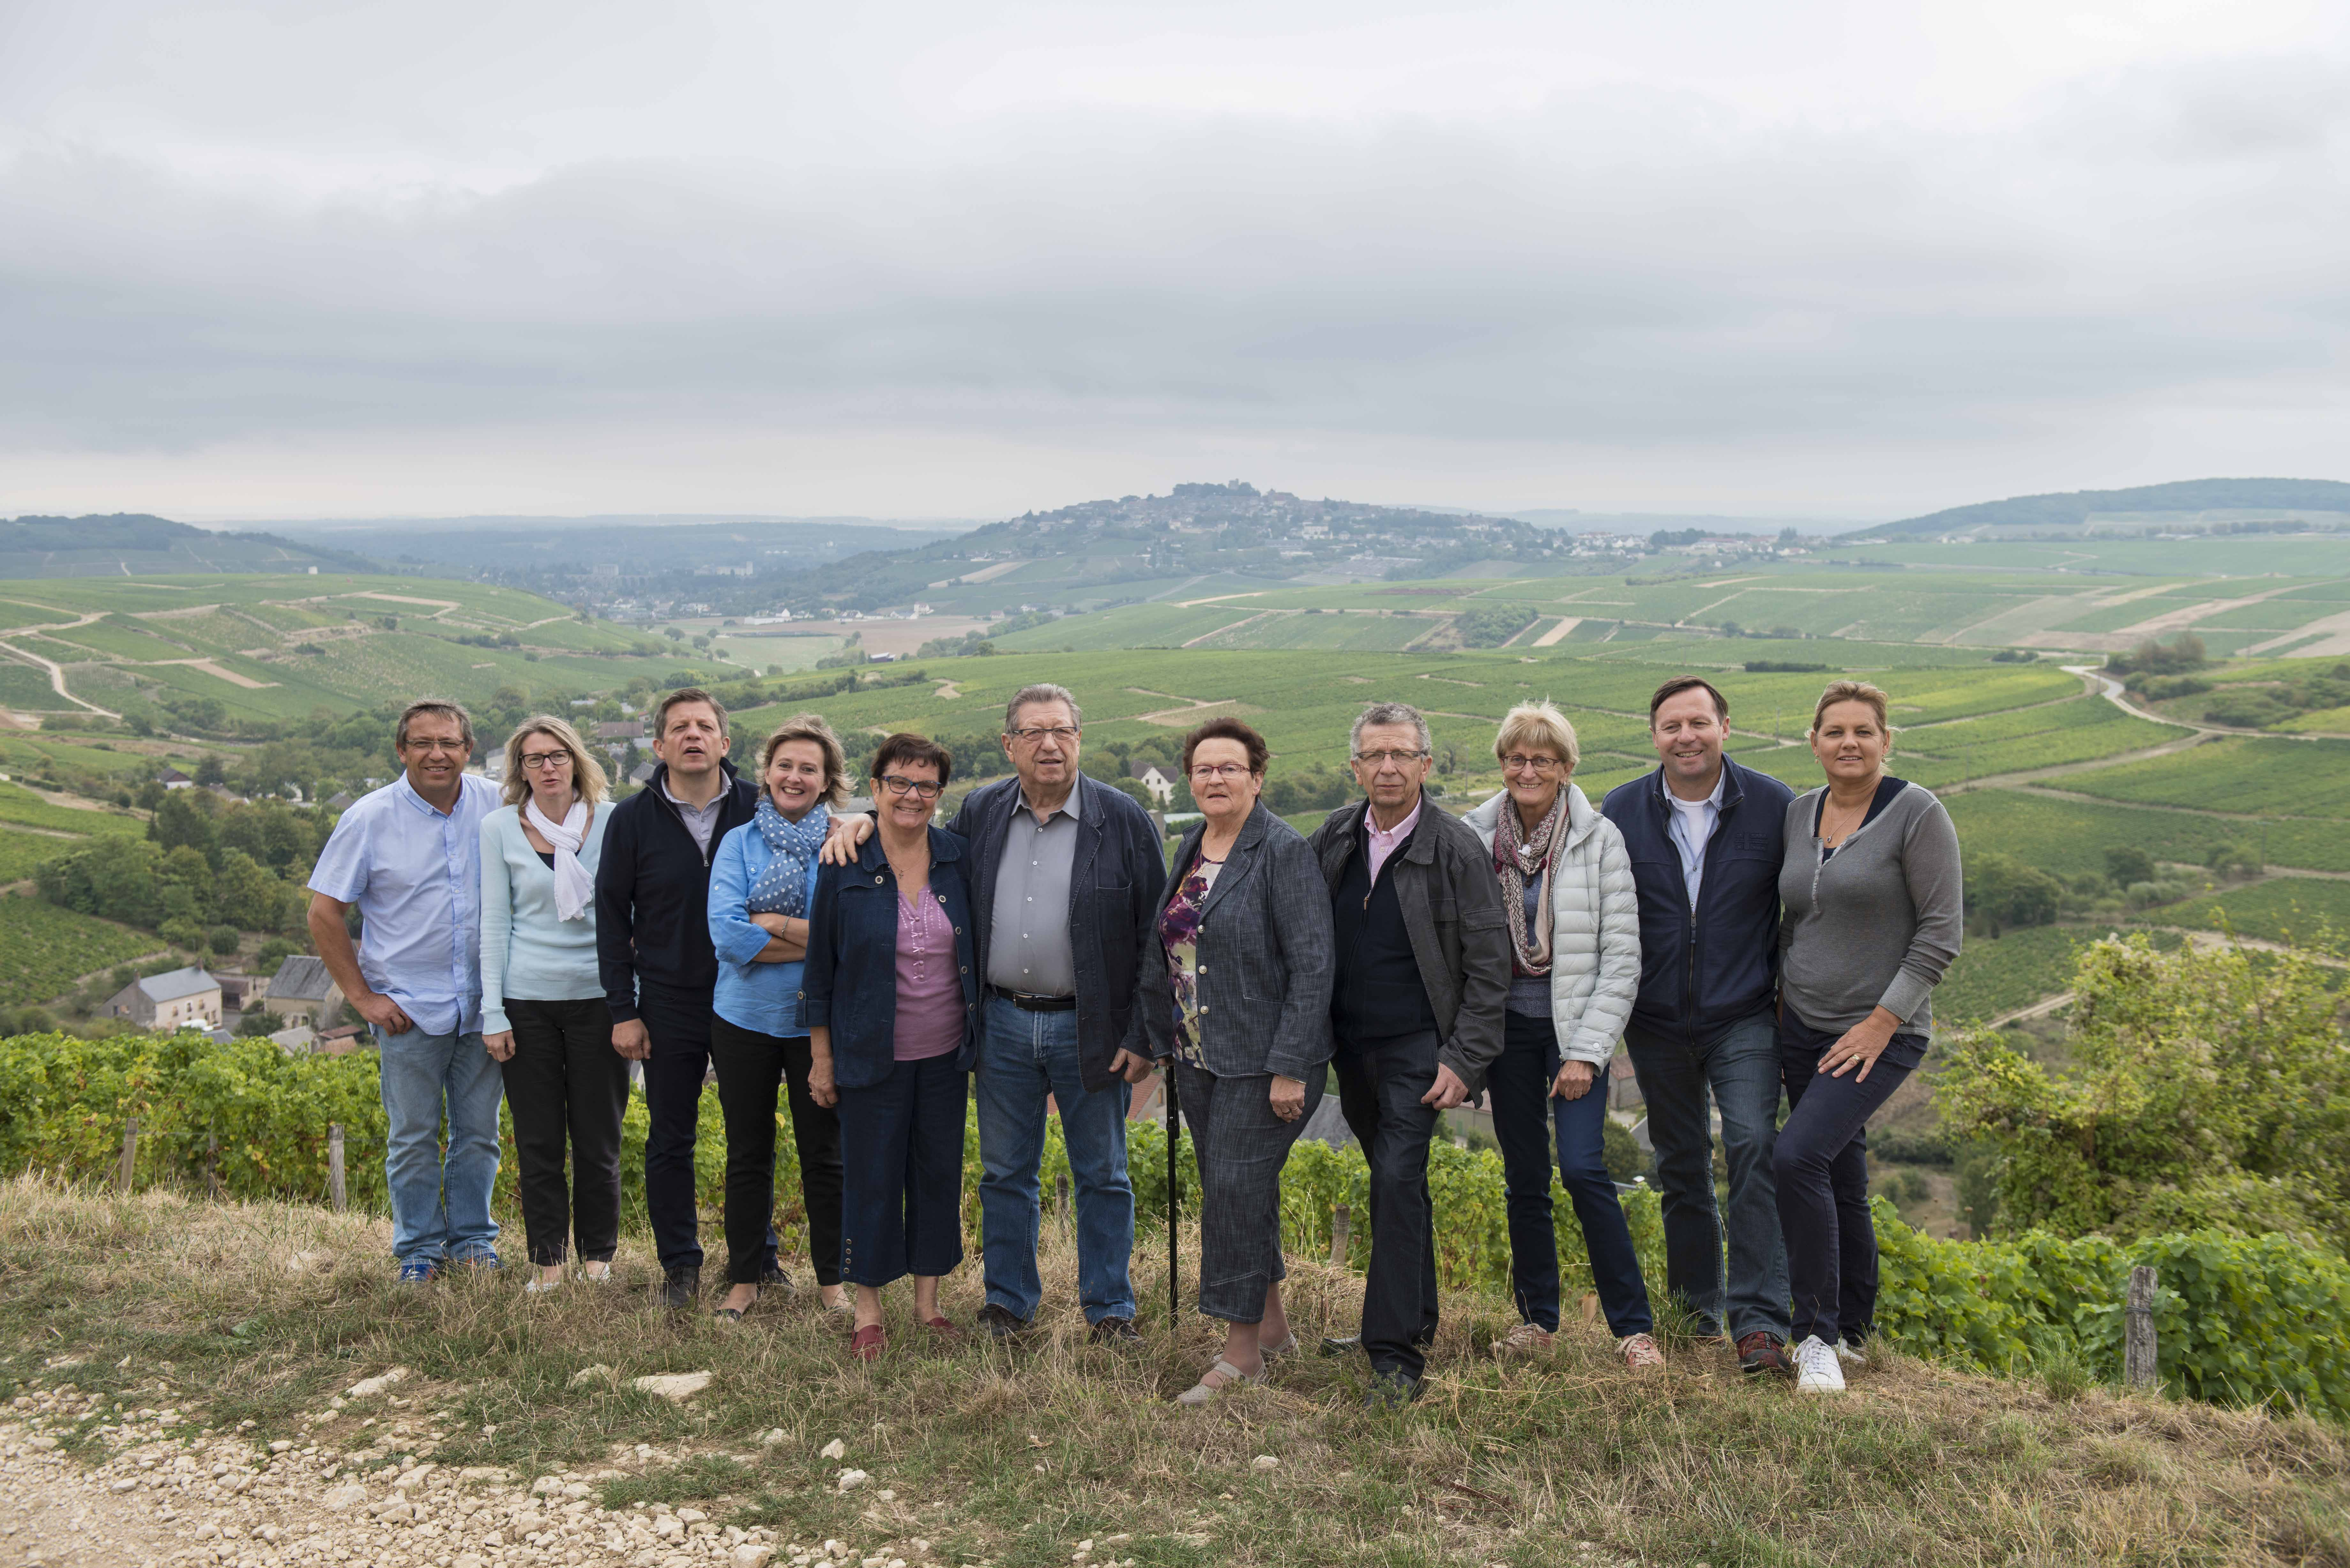 Bourgeois Family: Jean-Marie (Retired Chairman), Jean-Christophe (Winemaker), Lionel (Vineyard Manager), Arnaud (General Manager) & Raymond (Tasting Room Manager)